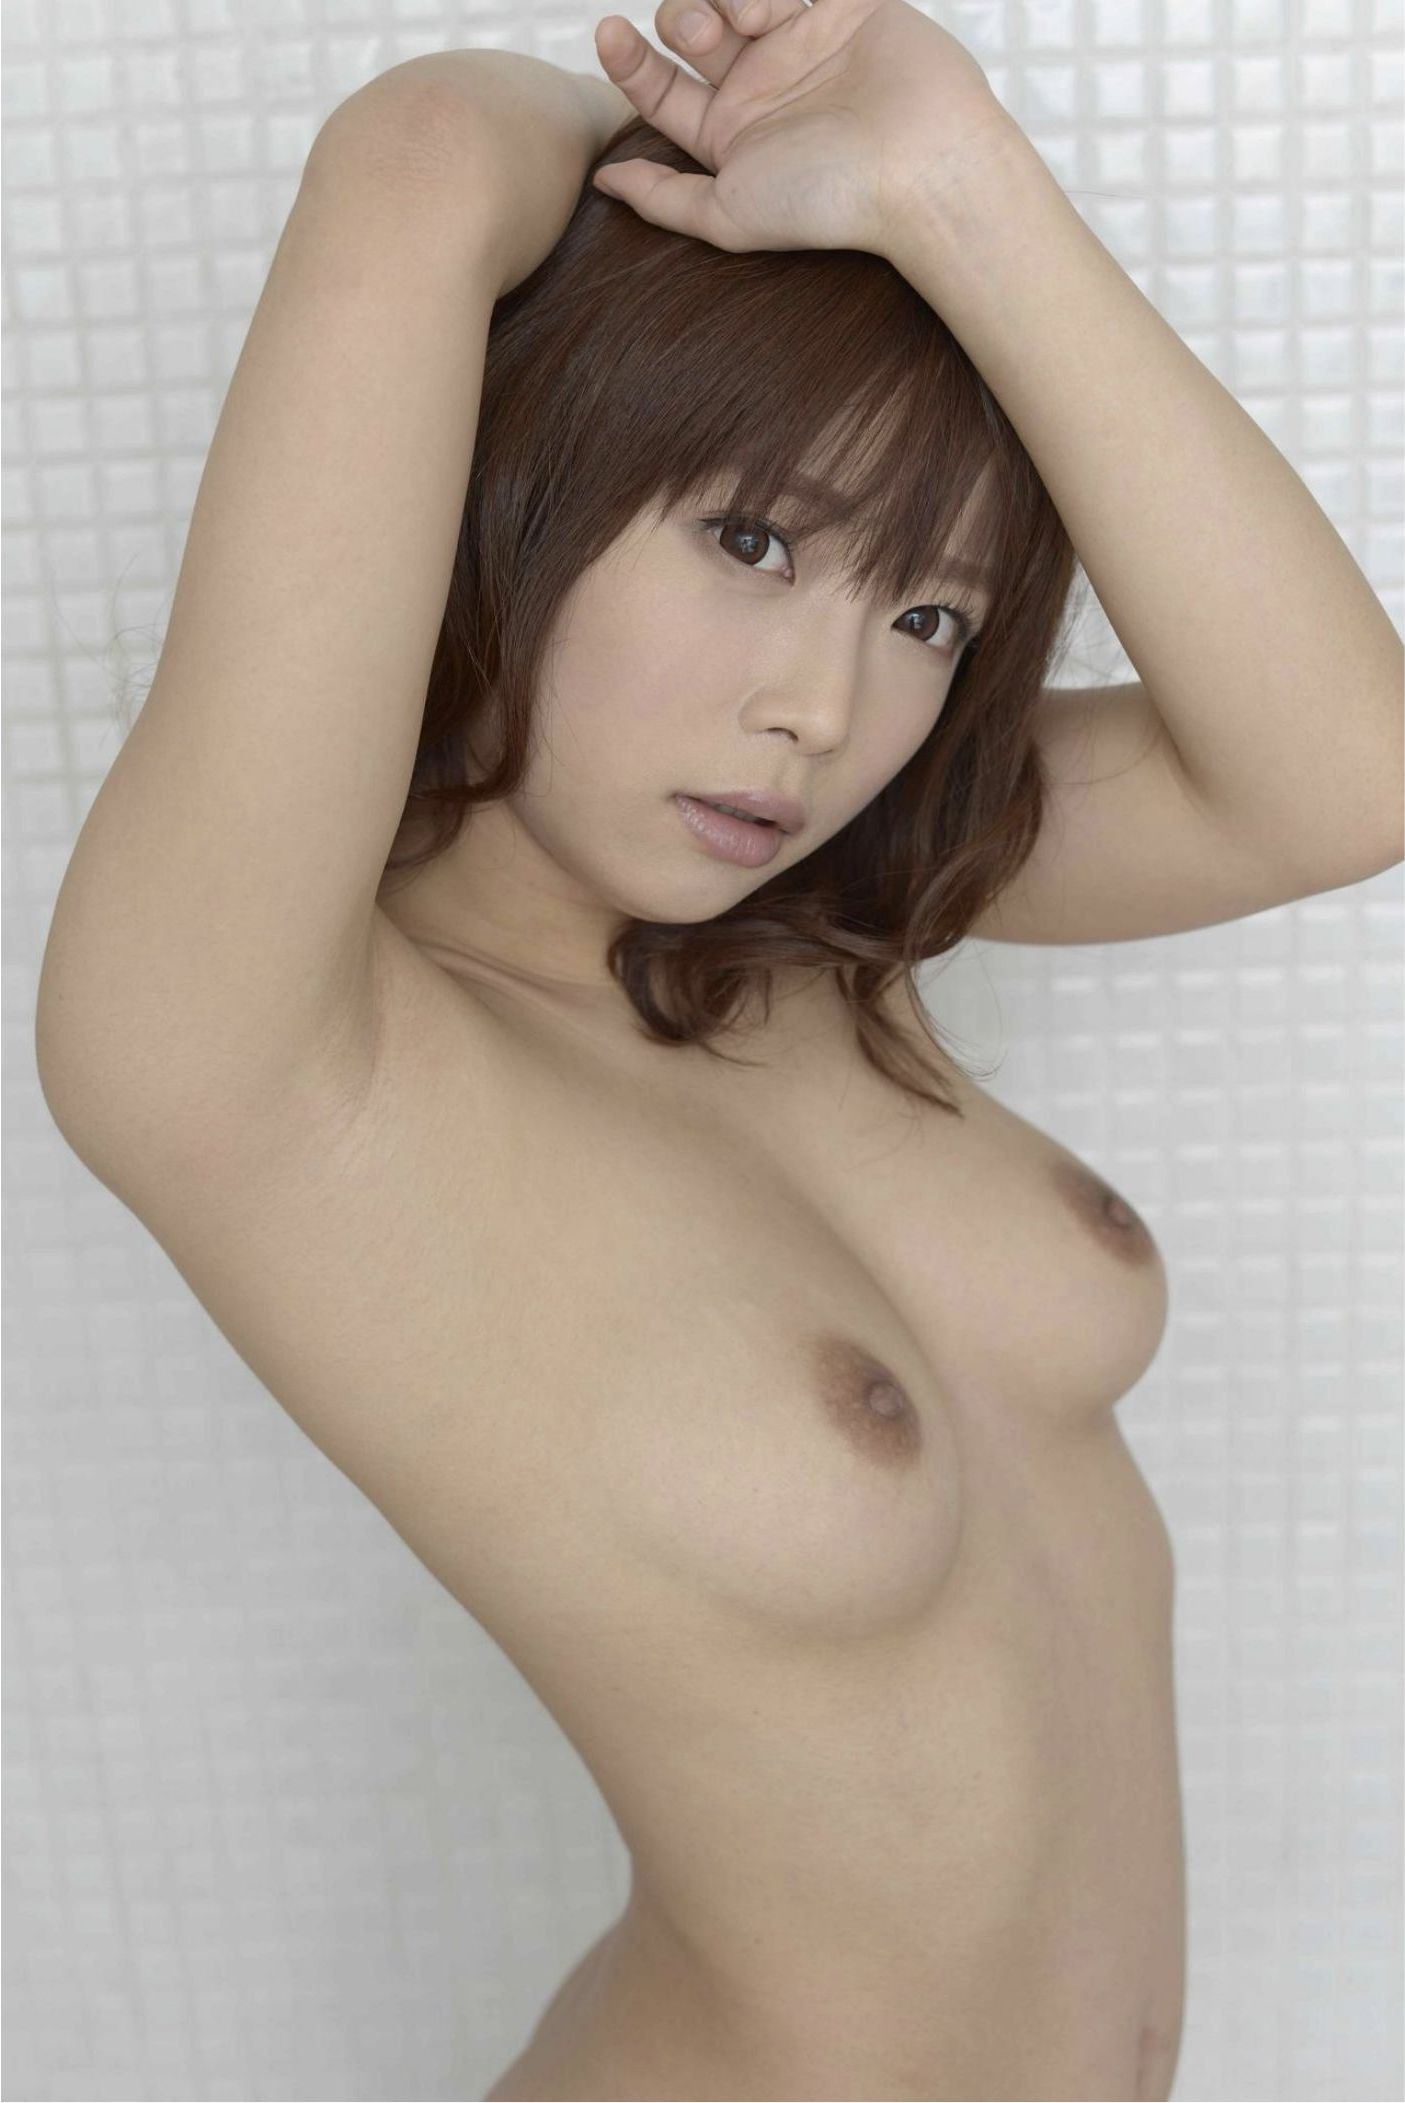 SOFT ON DEMAND GRAVURE COLLECTION 紗倉まな02 photo 061